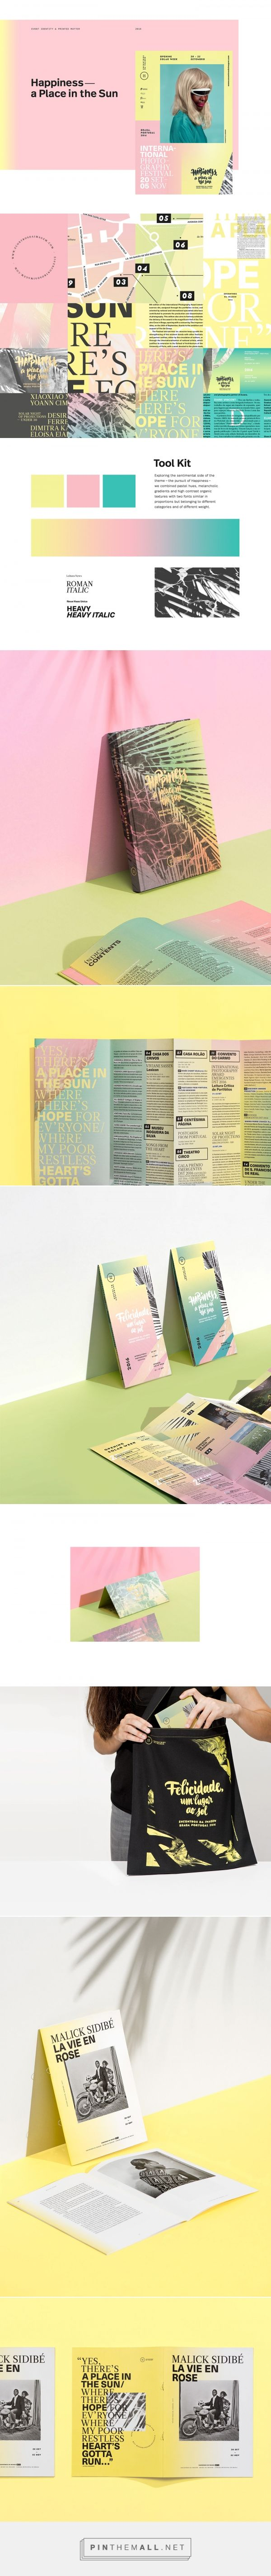 Encontros da Imagem / event identity and printed matter by gen design studio